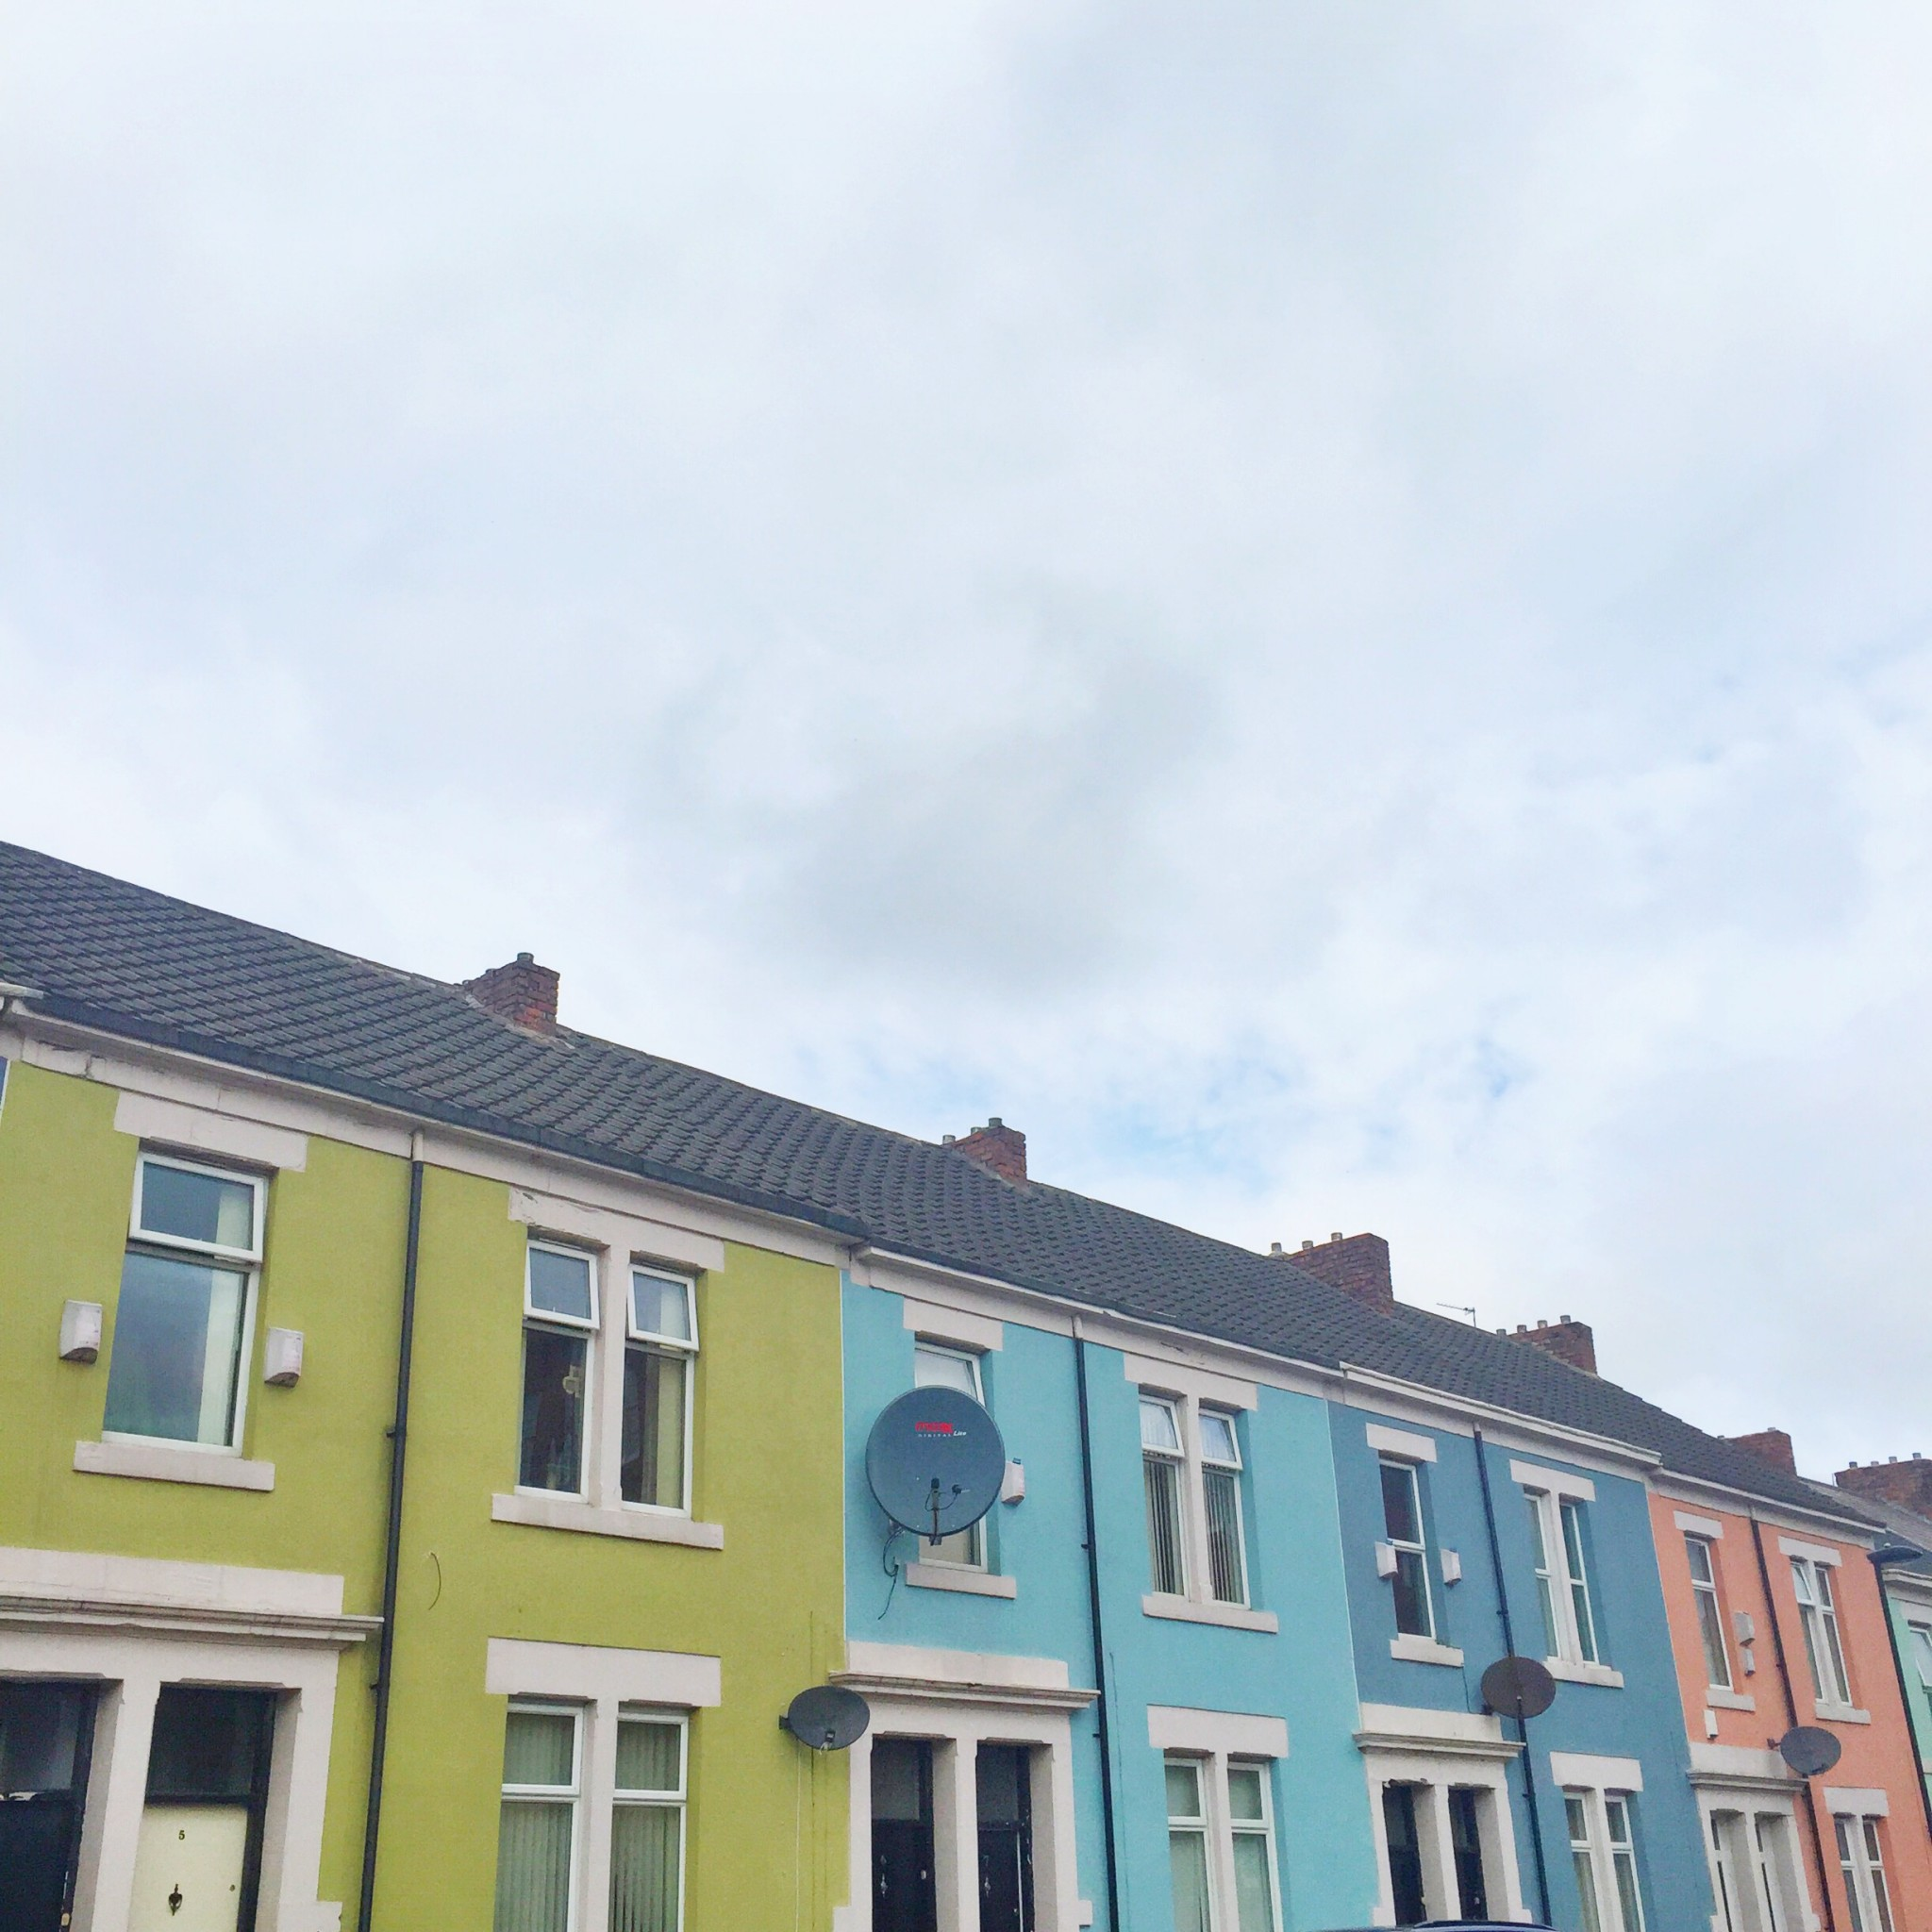 Colourful houses in Newcastle